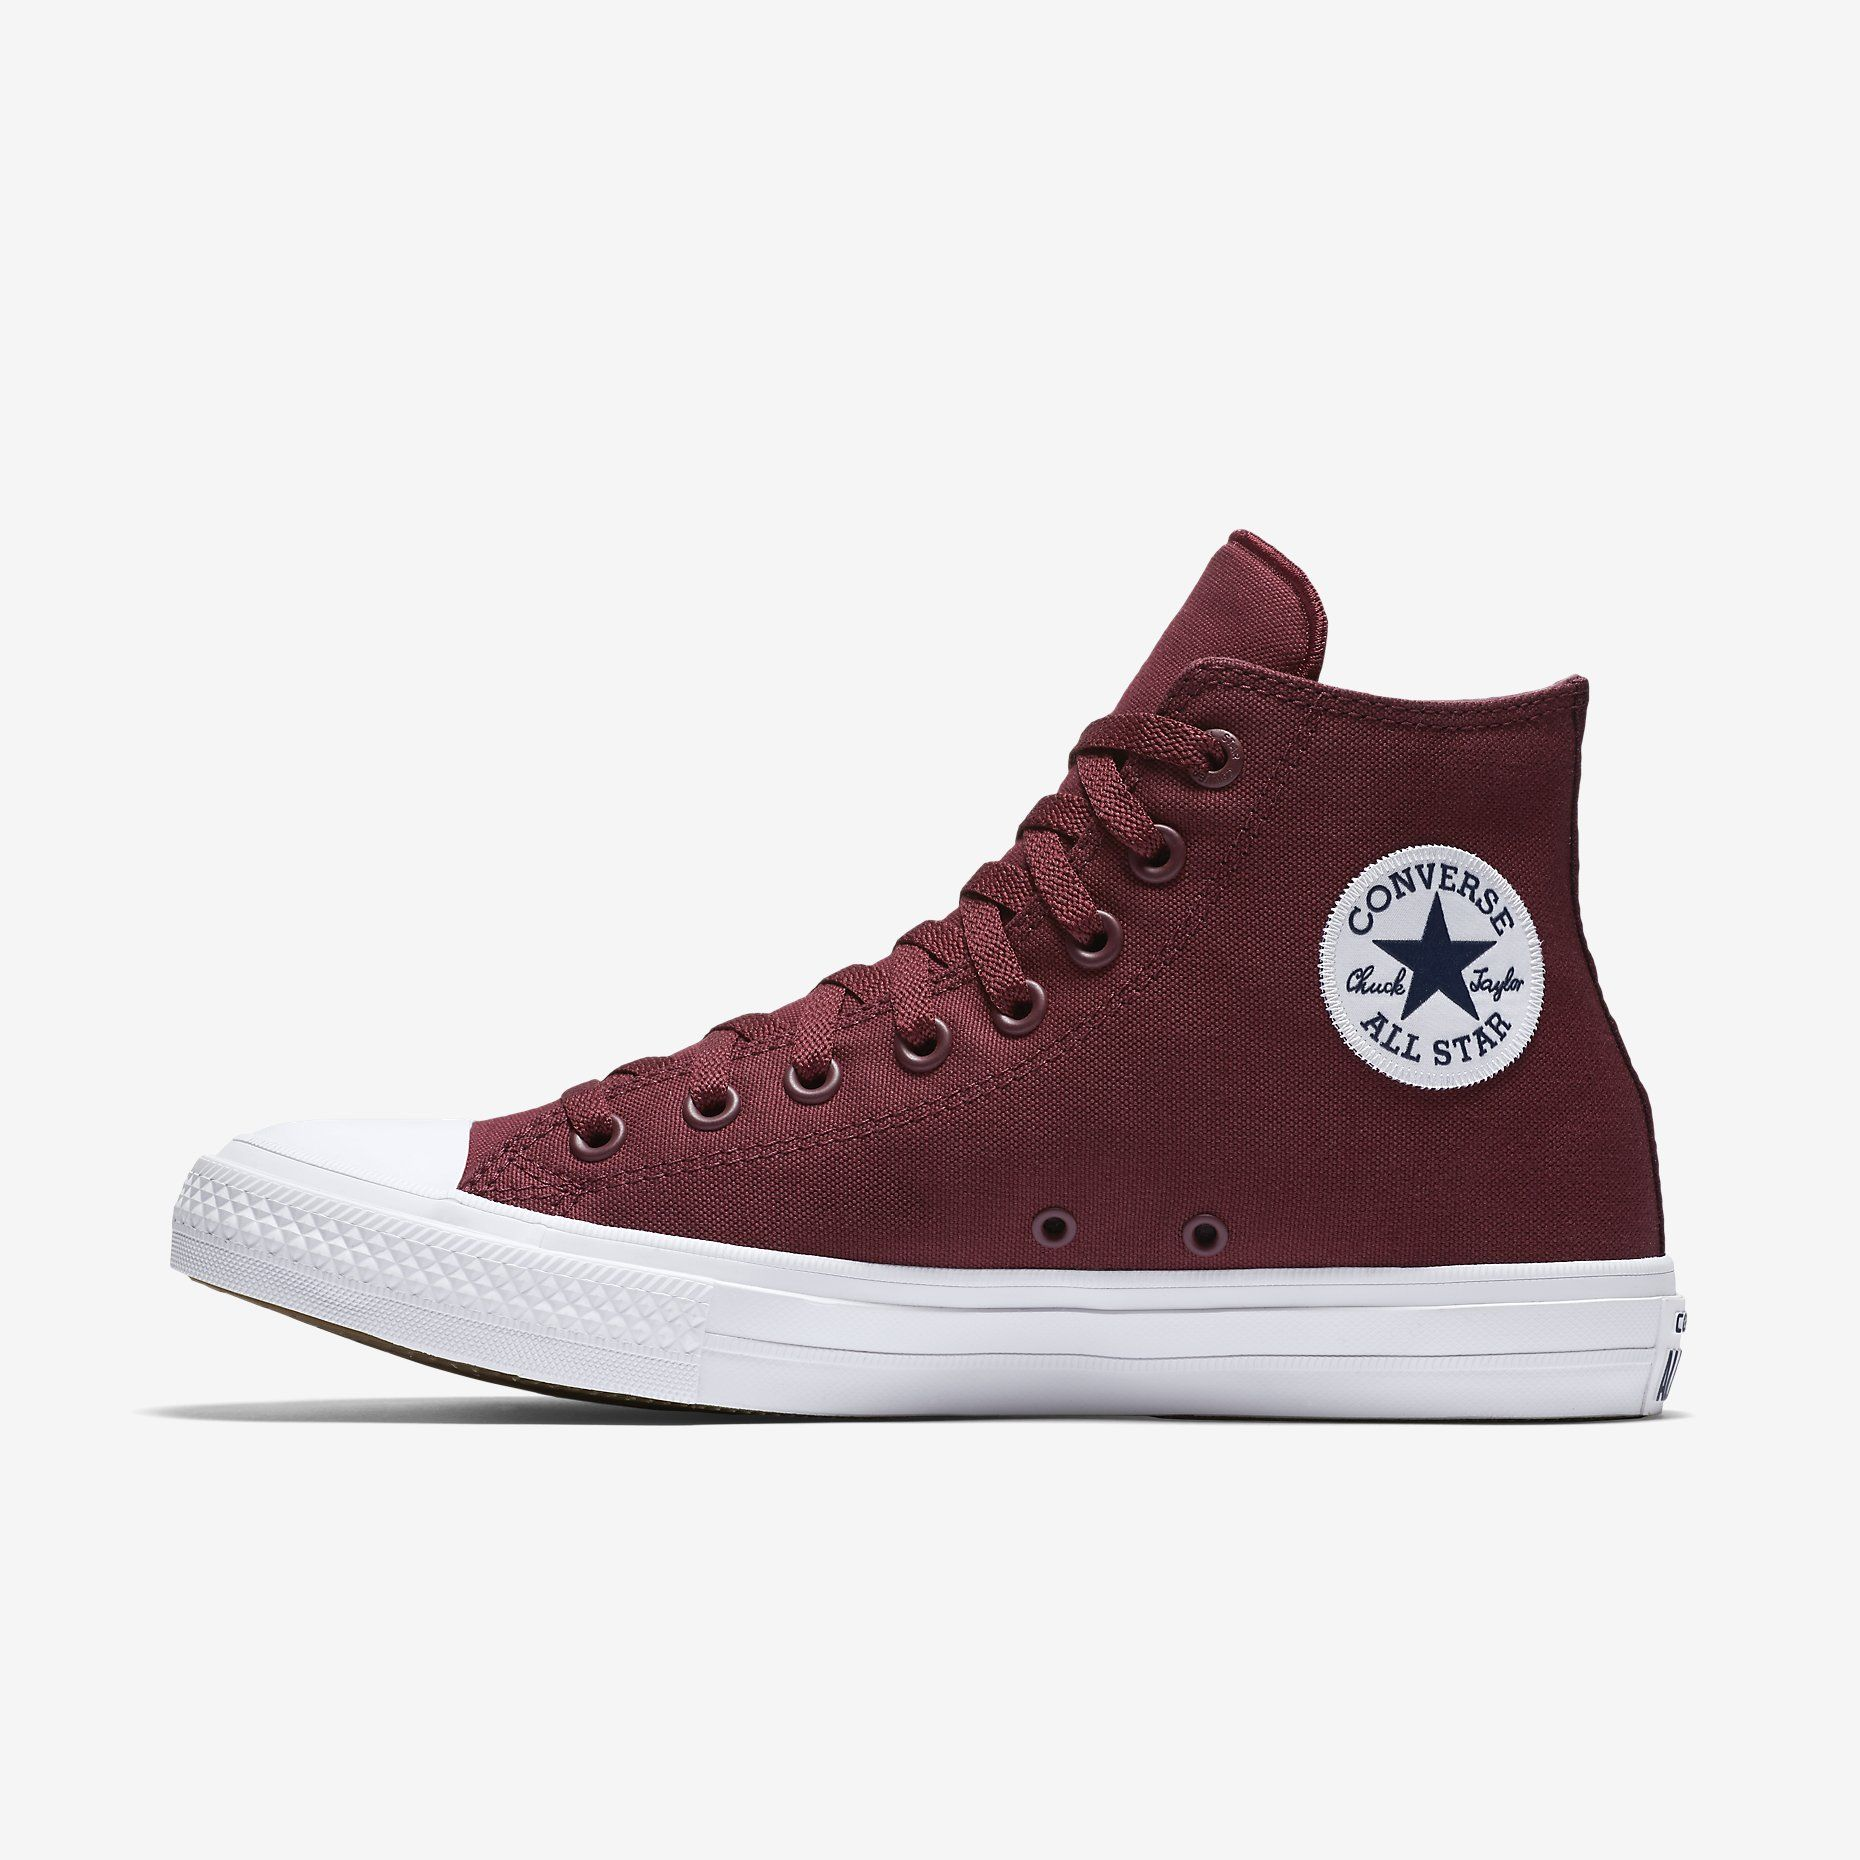 Converse Chuck II High Top Shoes Burgundy